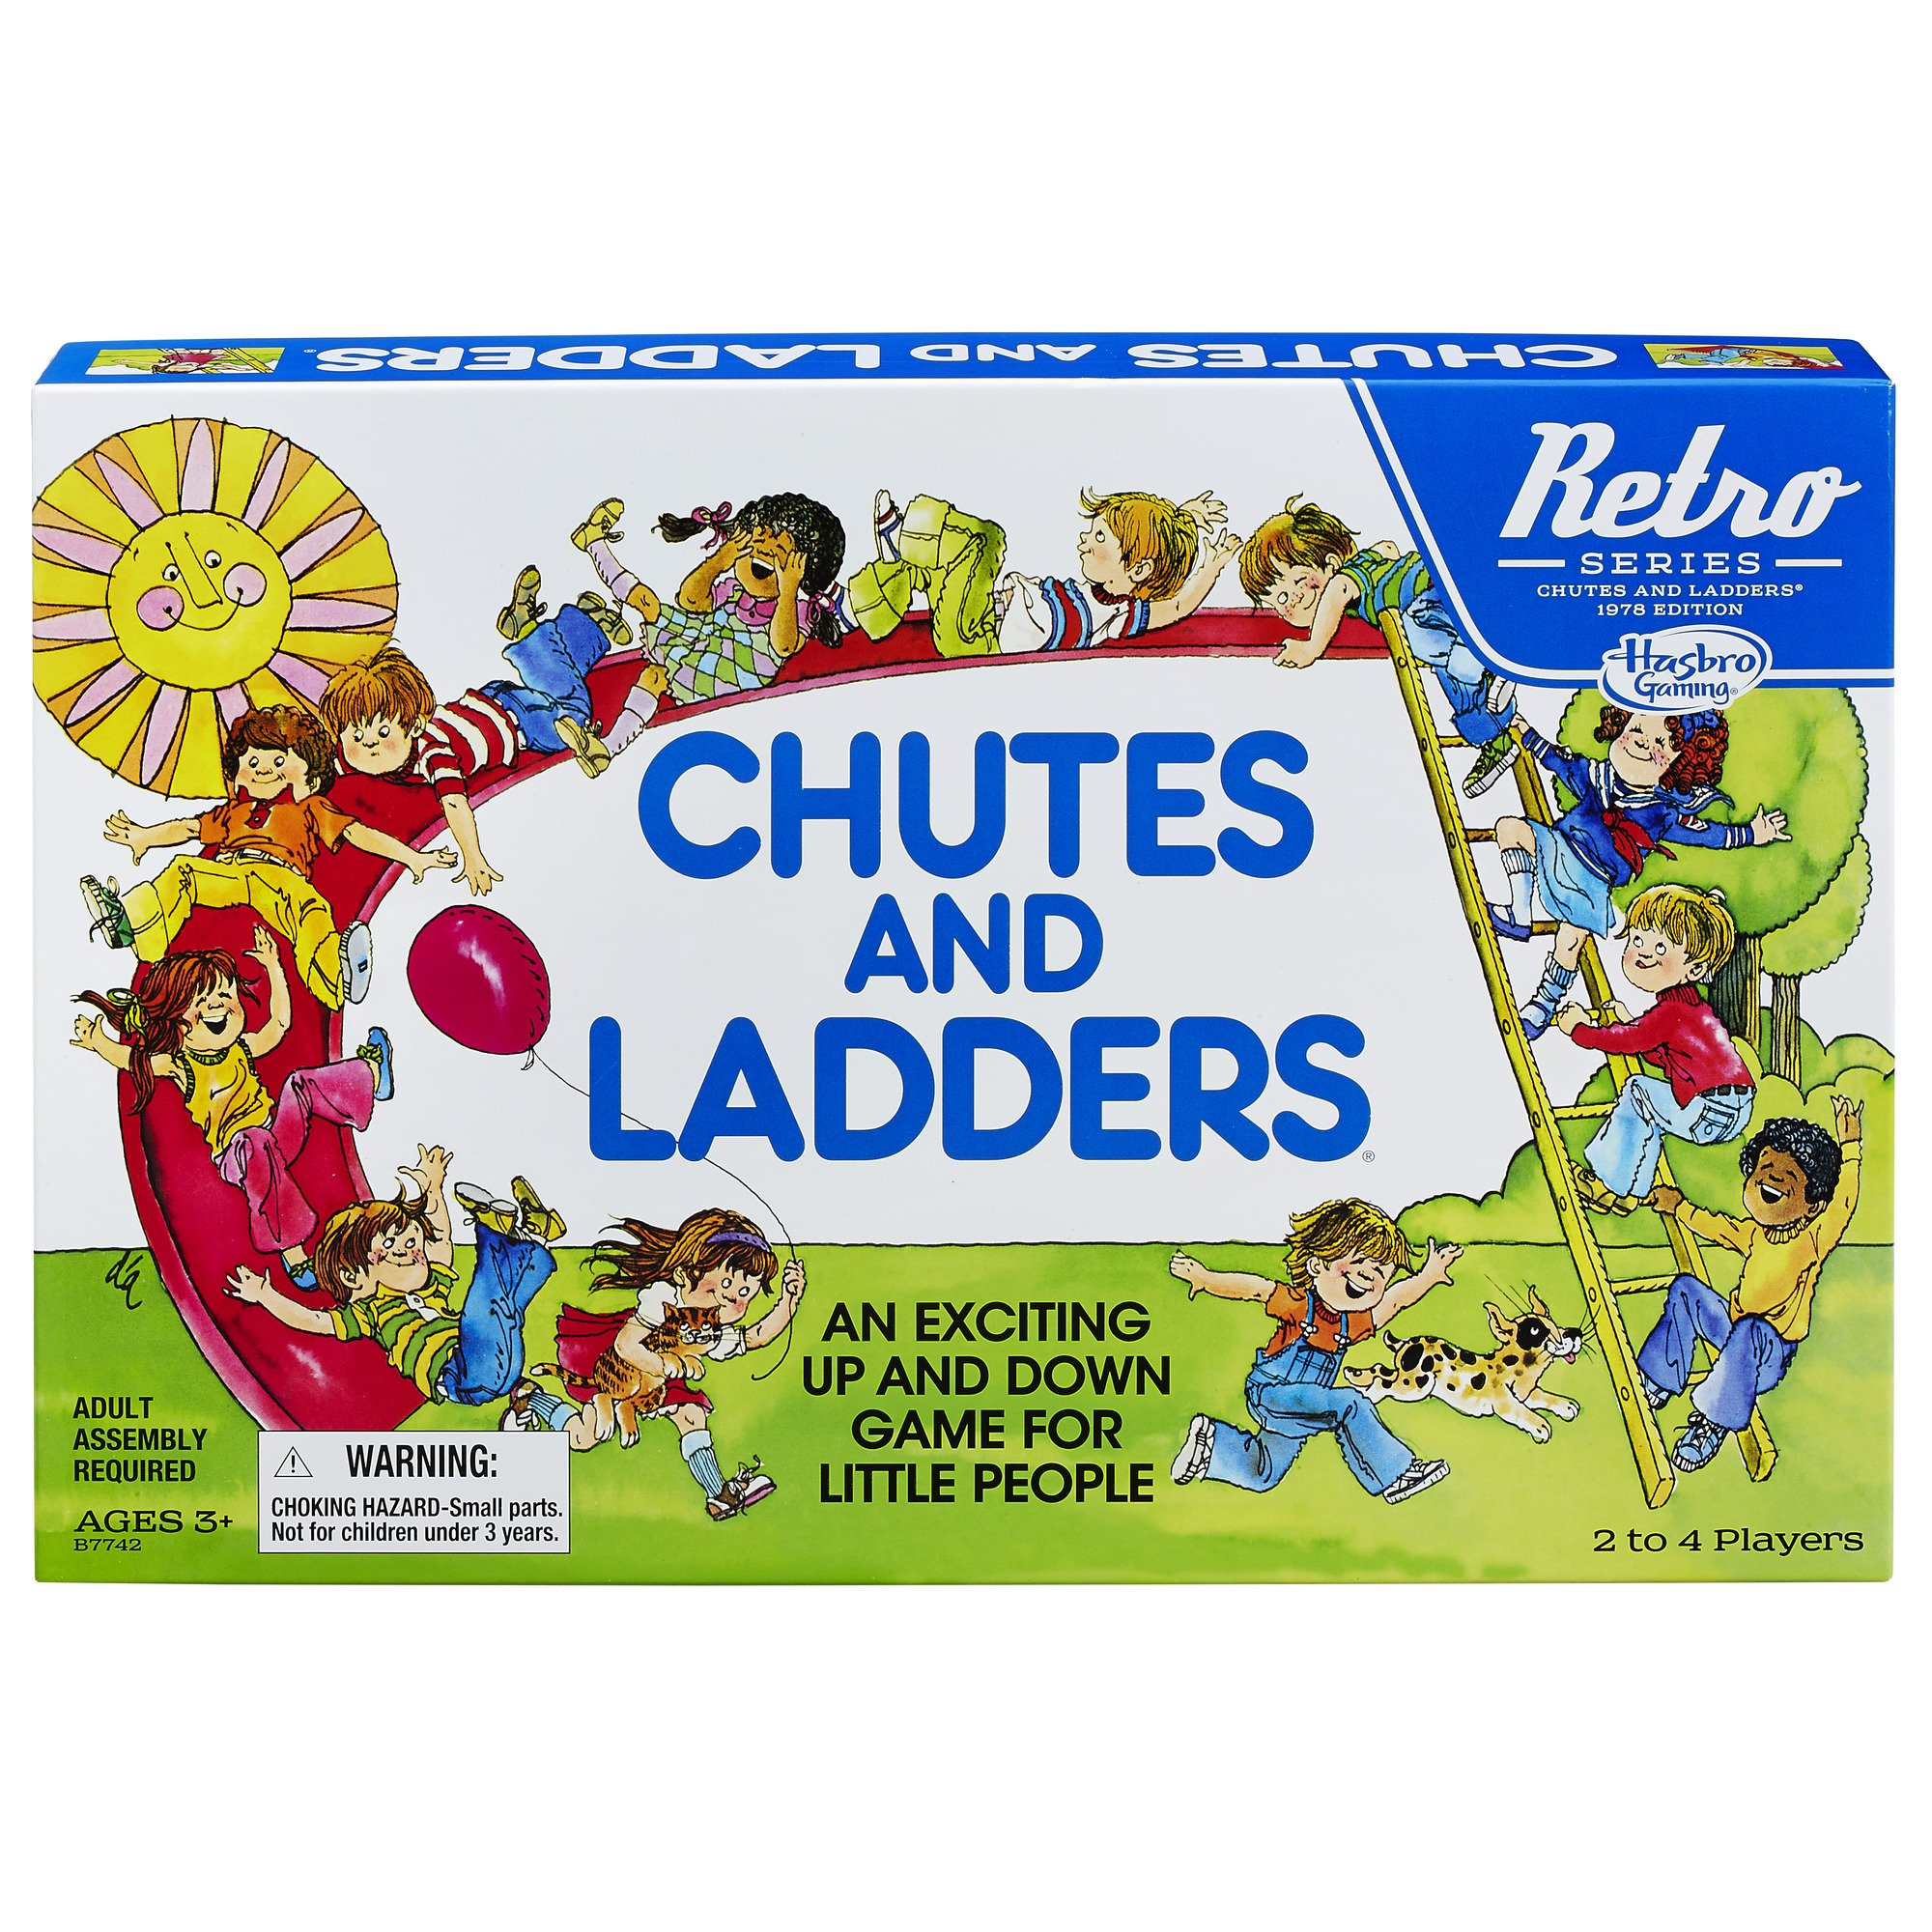 Hasbro Chutes and Ladders Game: Retro Series 1978 Edition